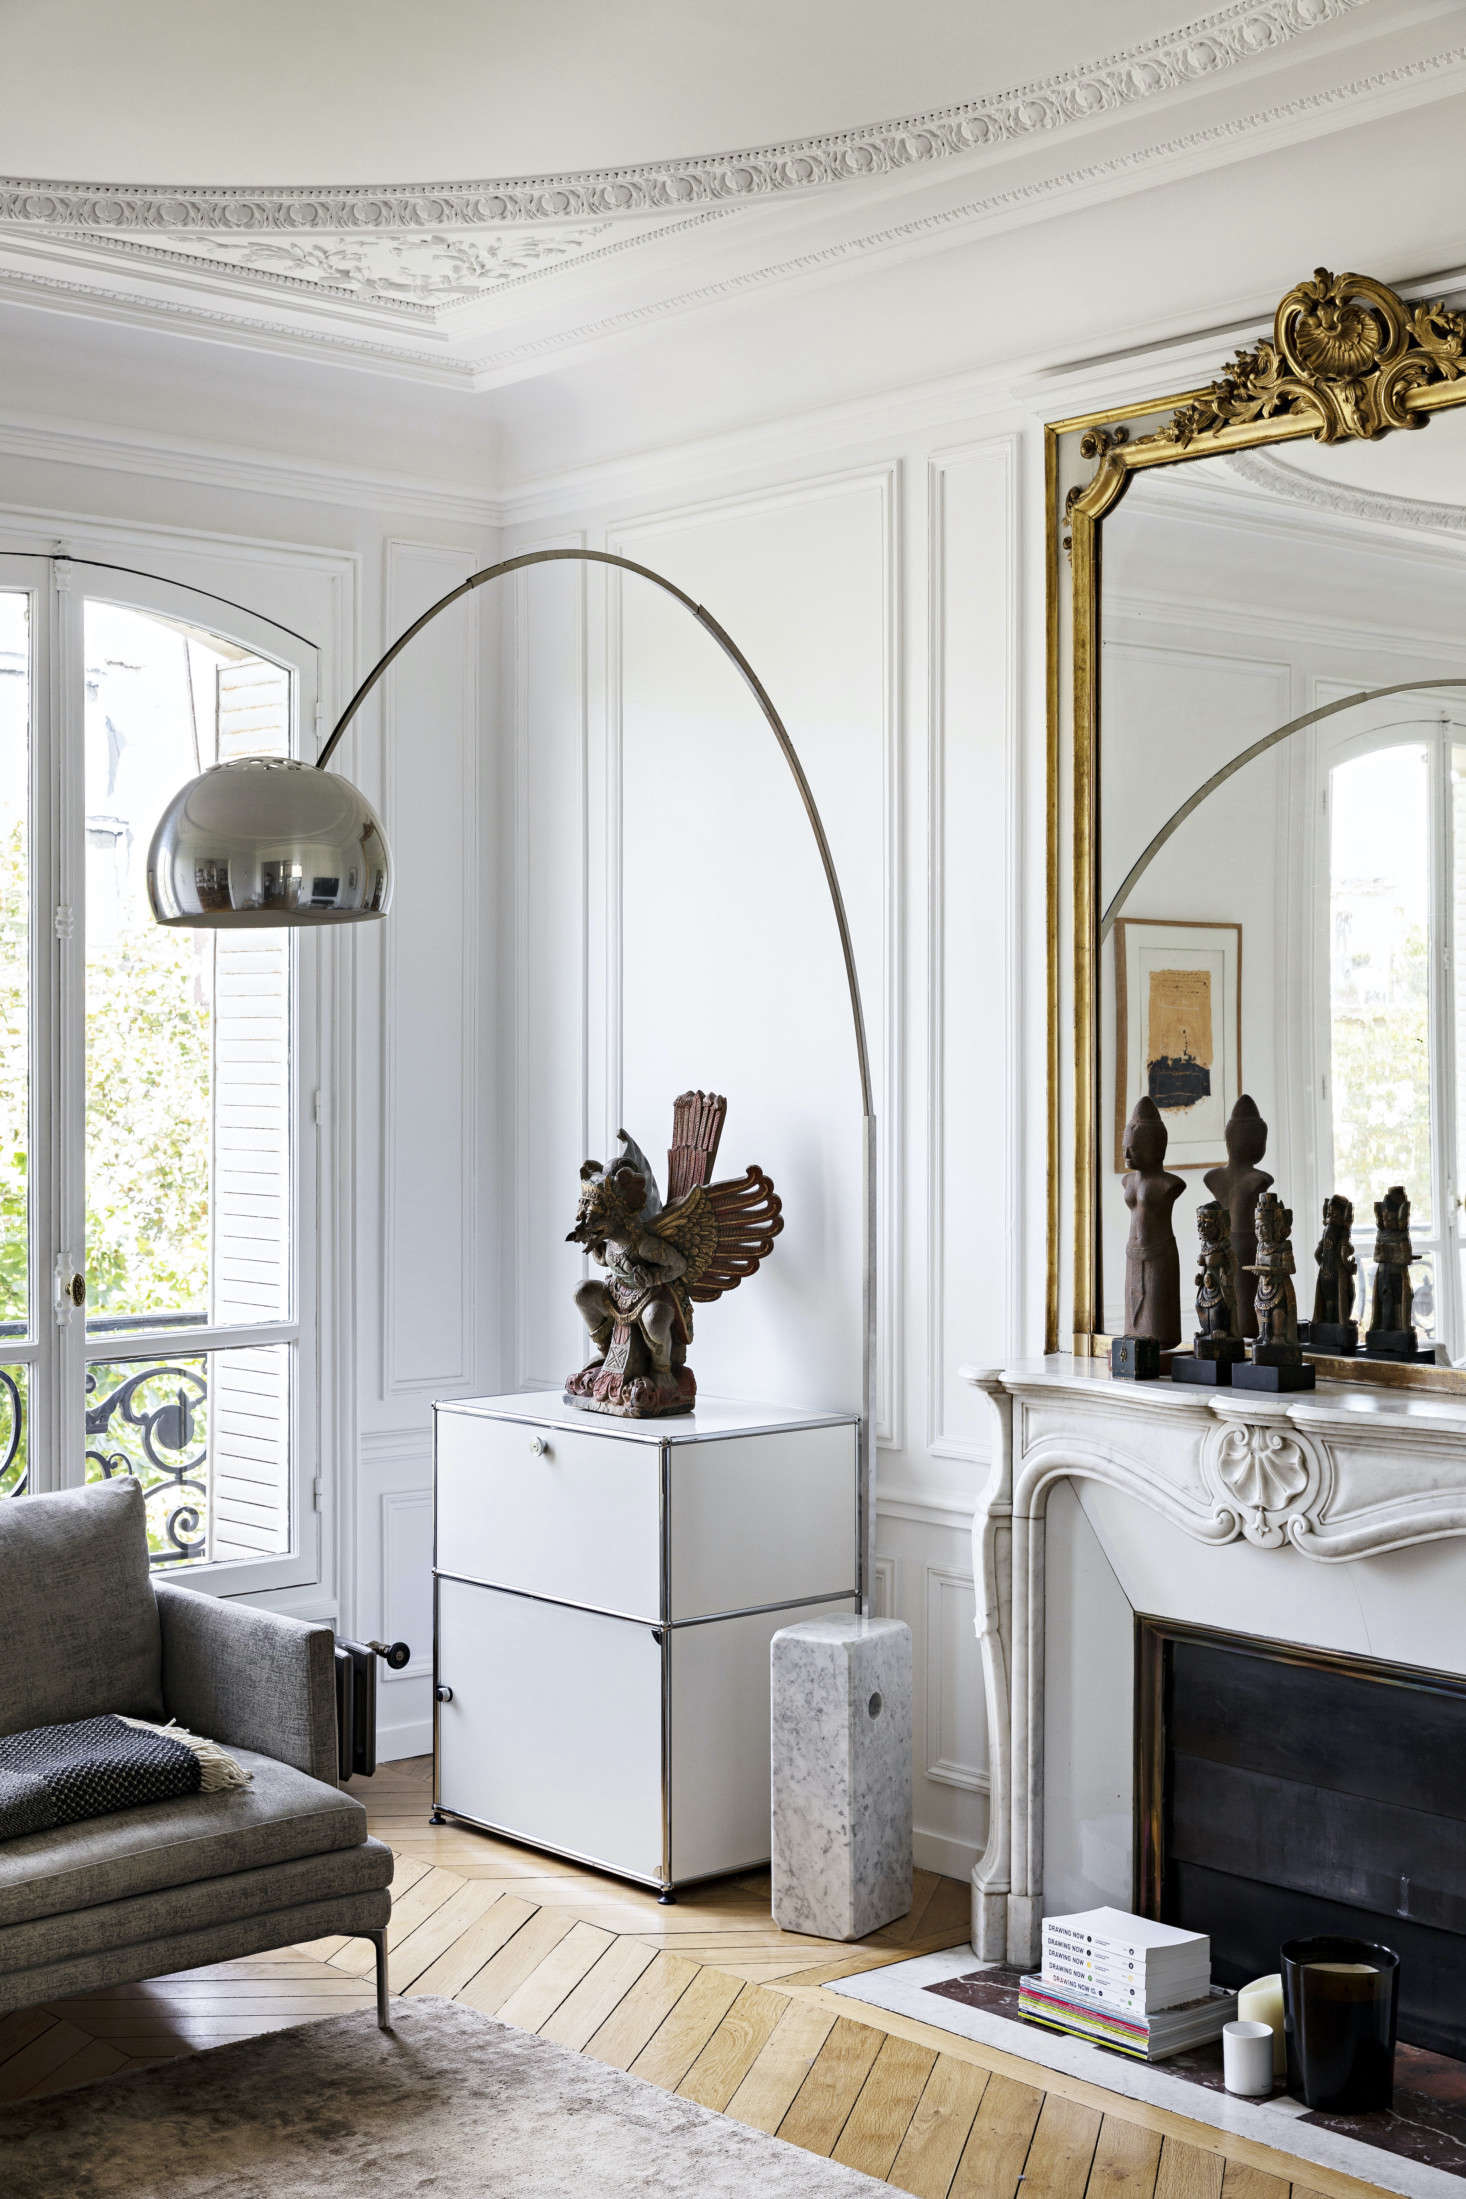 One of our favorite iconic storage pieces, the USM Haller cabinet anchors a corner of a classic Parisian apartment. Photograph by Yann Deret, courtesy of Olivia Massimi, from Sophisticated Charm: An Elegant and Artistic Paris Apartment.